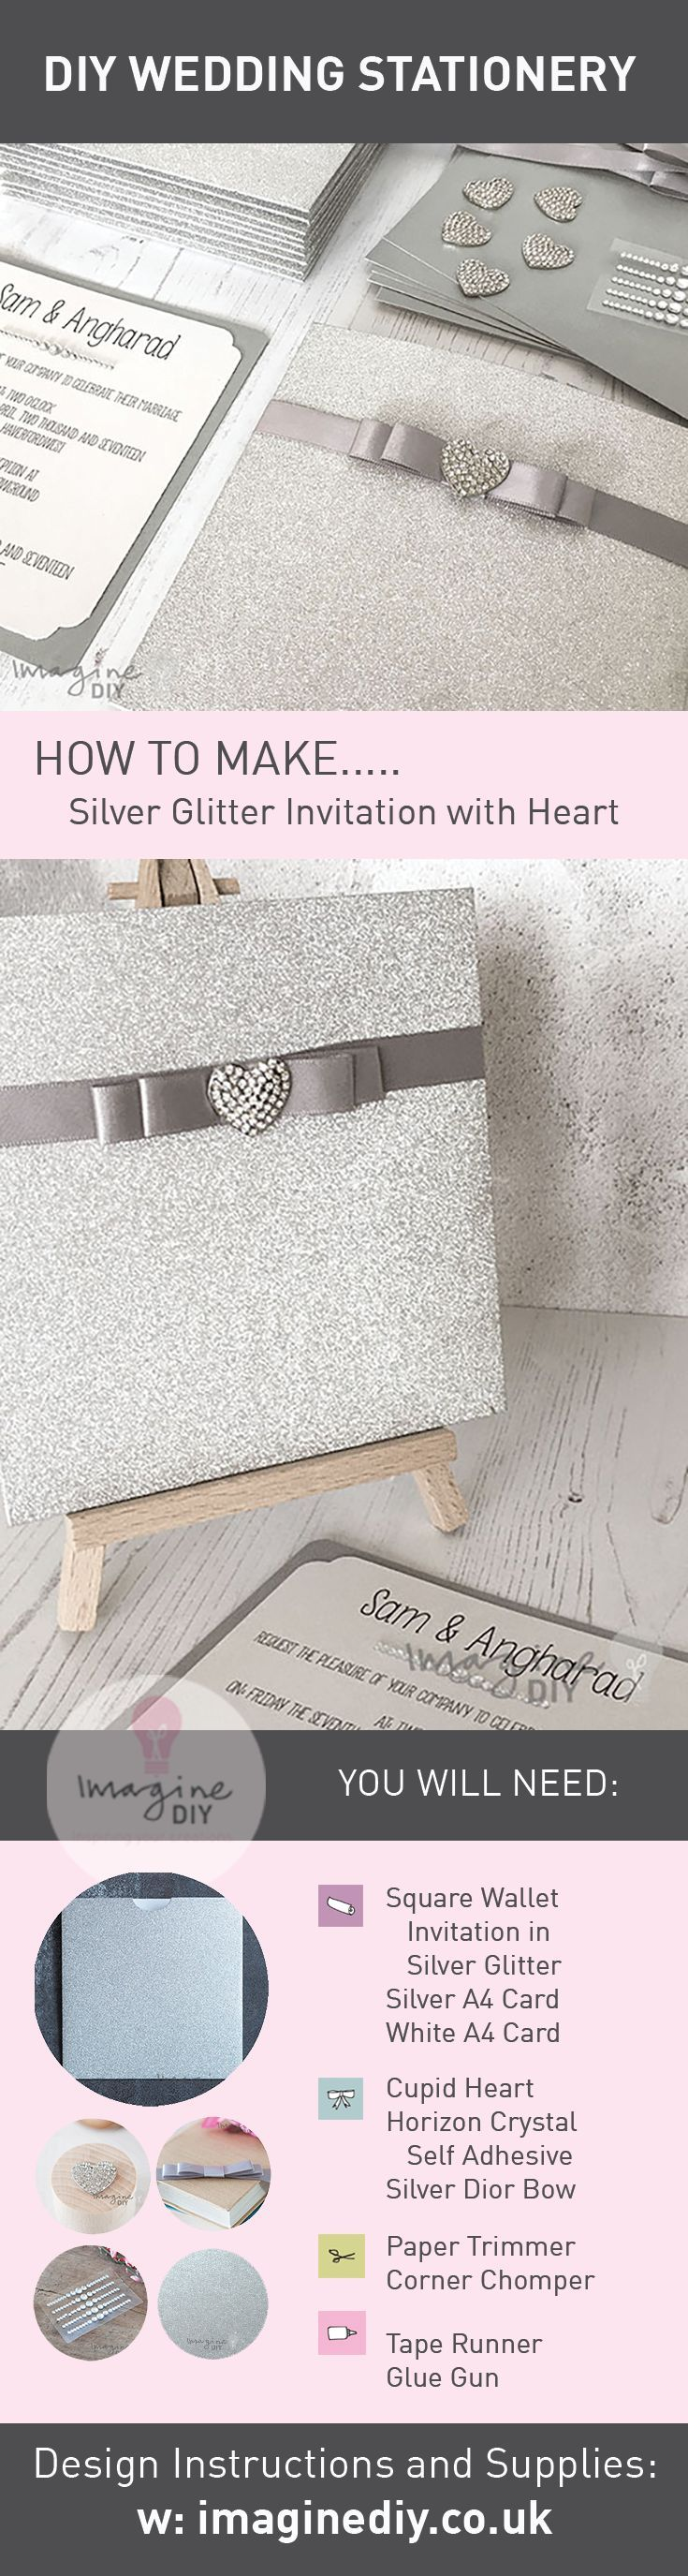 282 best How to Make DIY Wedding Stationery images on Pinterest